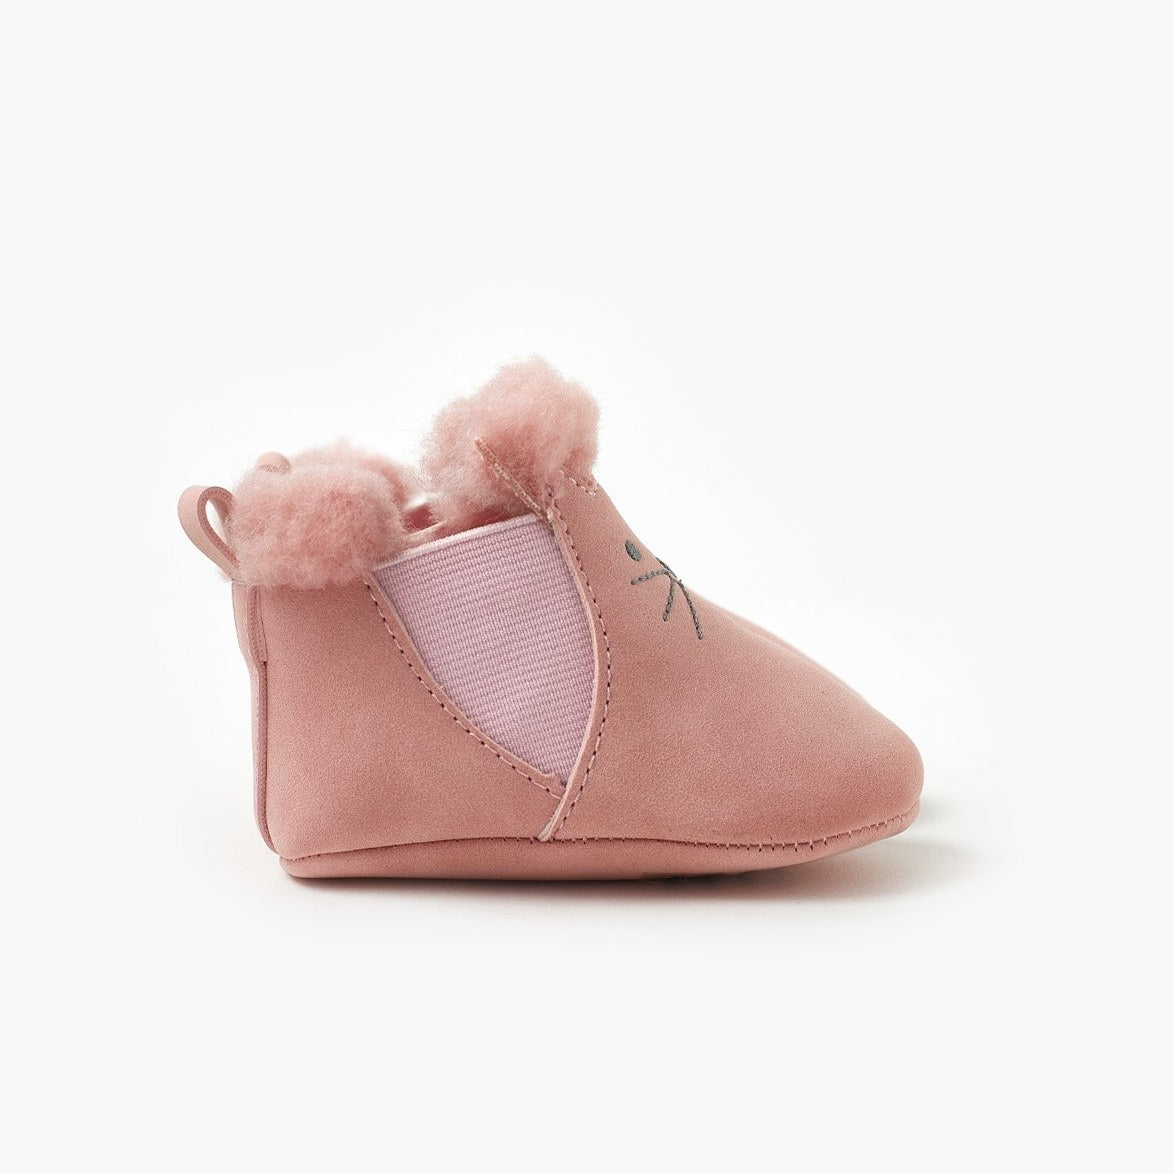 Tulip Bootie - Pale Pink-Shoes-Walnut-17-Little Soldiers